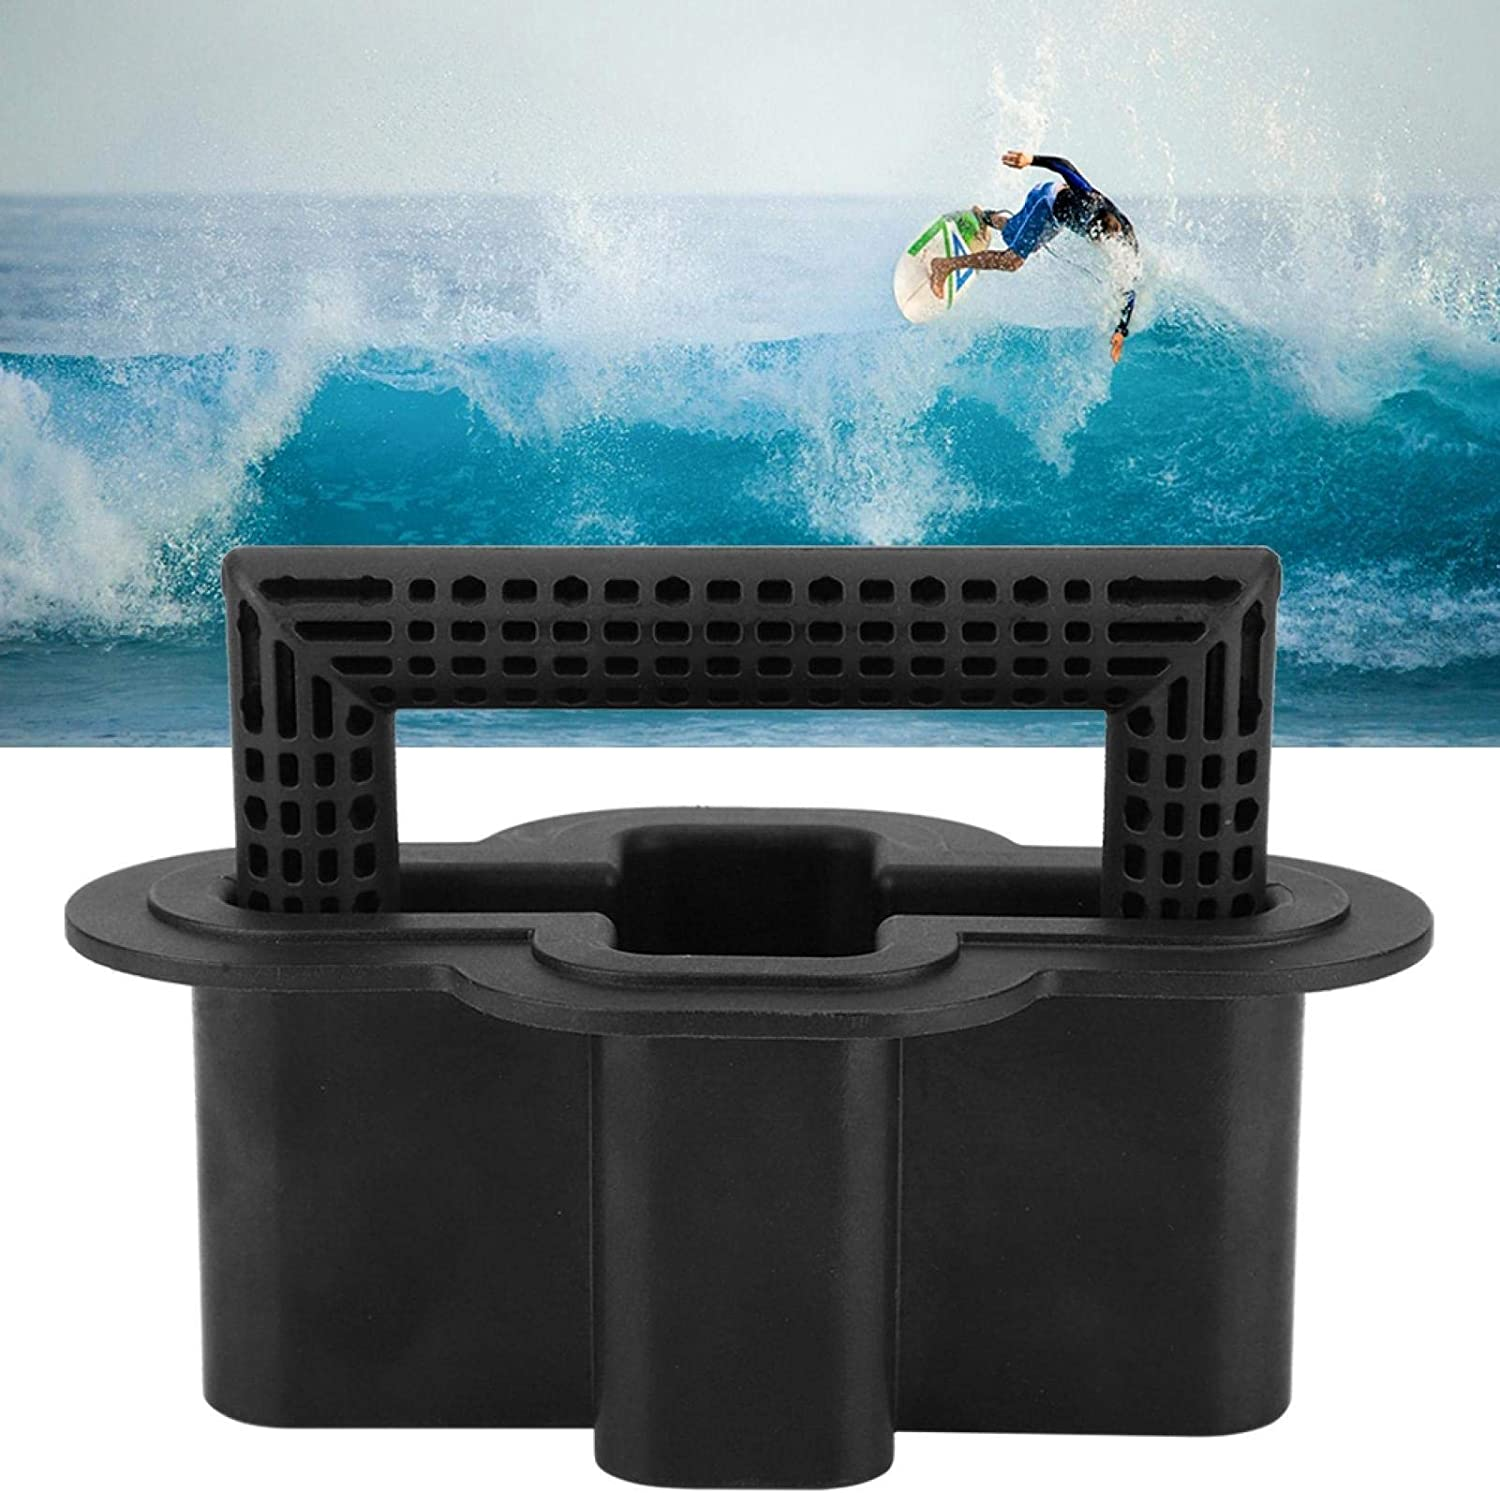 Surfing Paddle Handle Small black for unisex Surfers SALENEW very popular Size